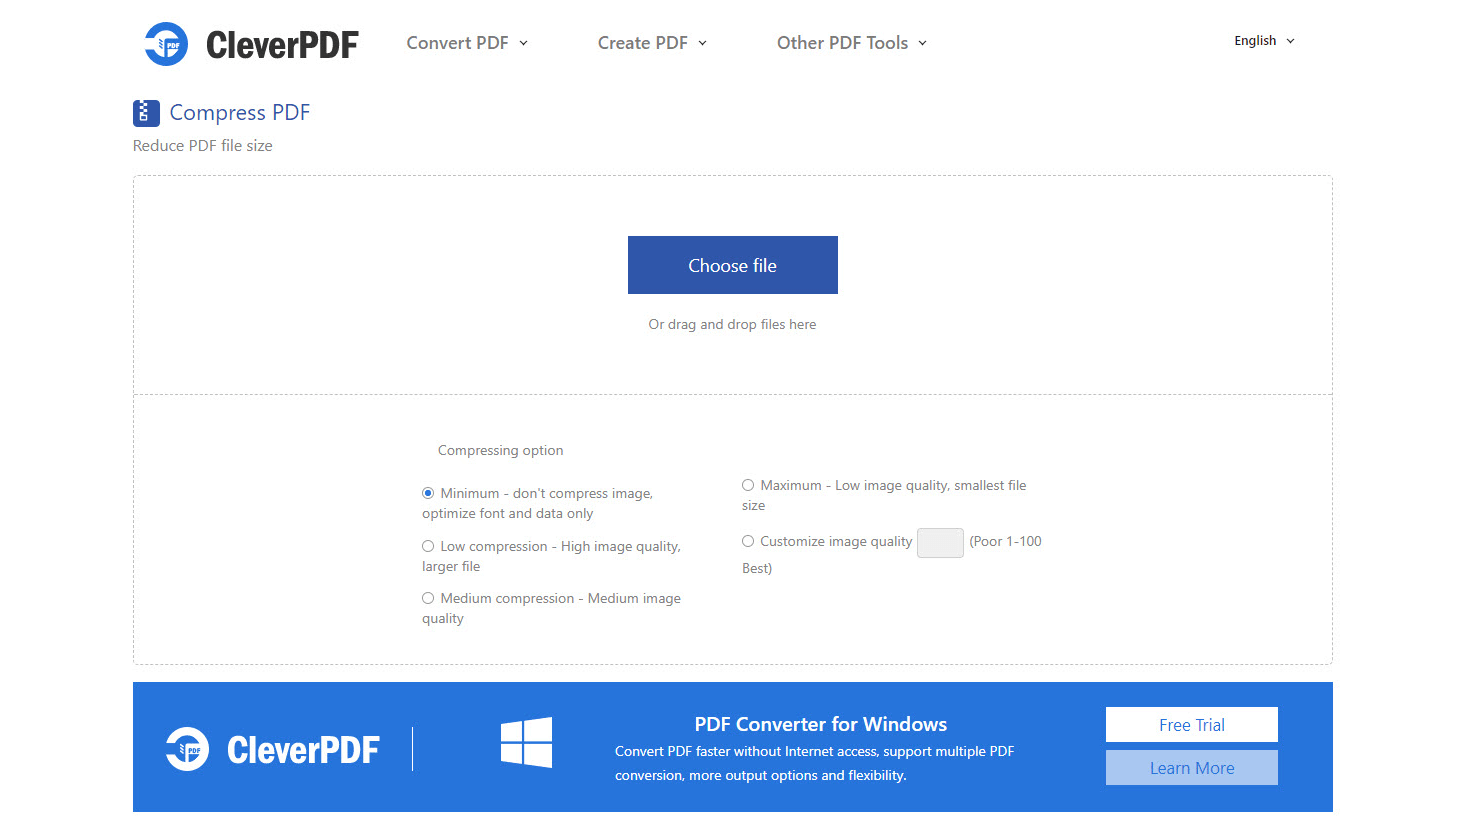 Compress PDF or Reduce PDF file size Step 1 Choose a PDF file and upload